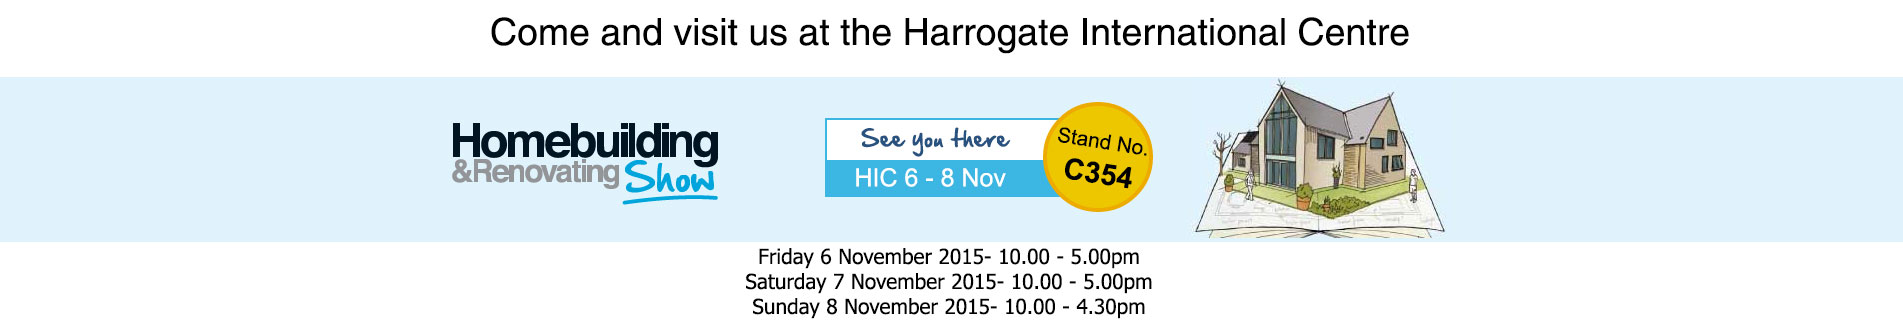 come along to the Harrogate Exhibition Centre and meet us